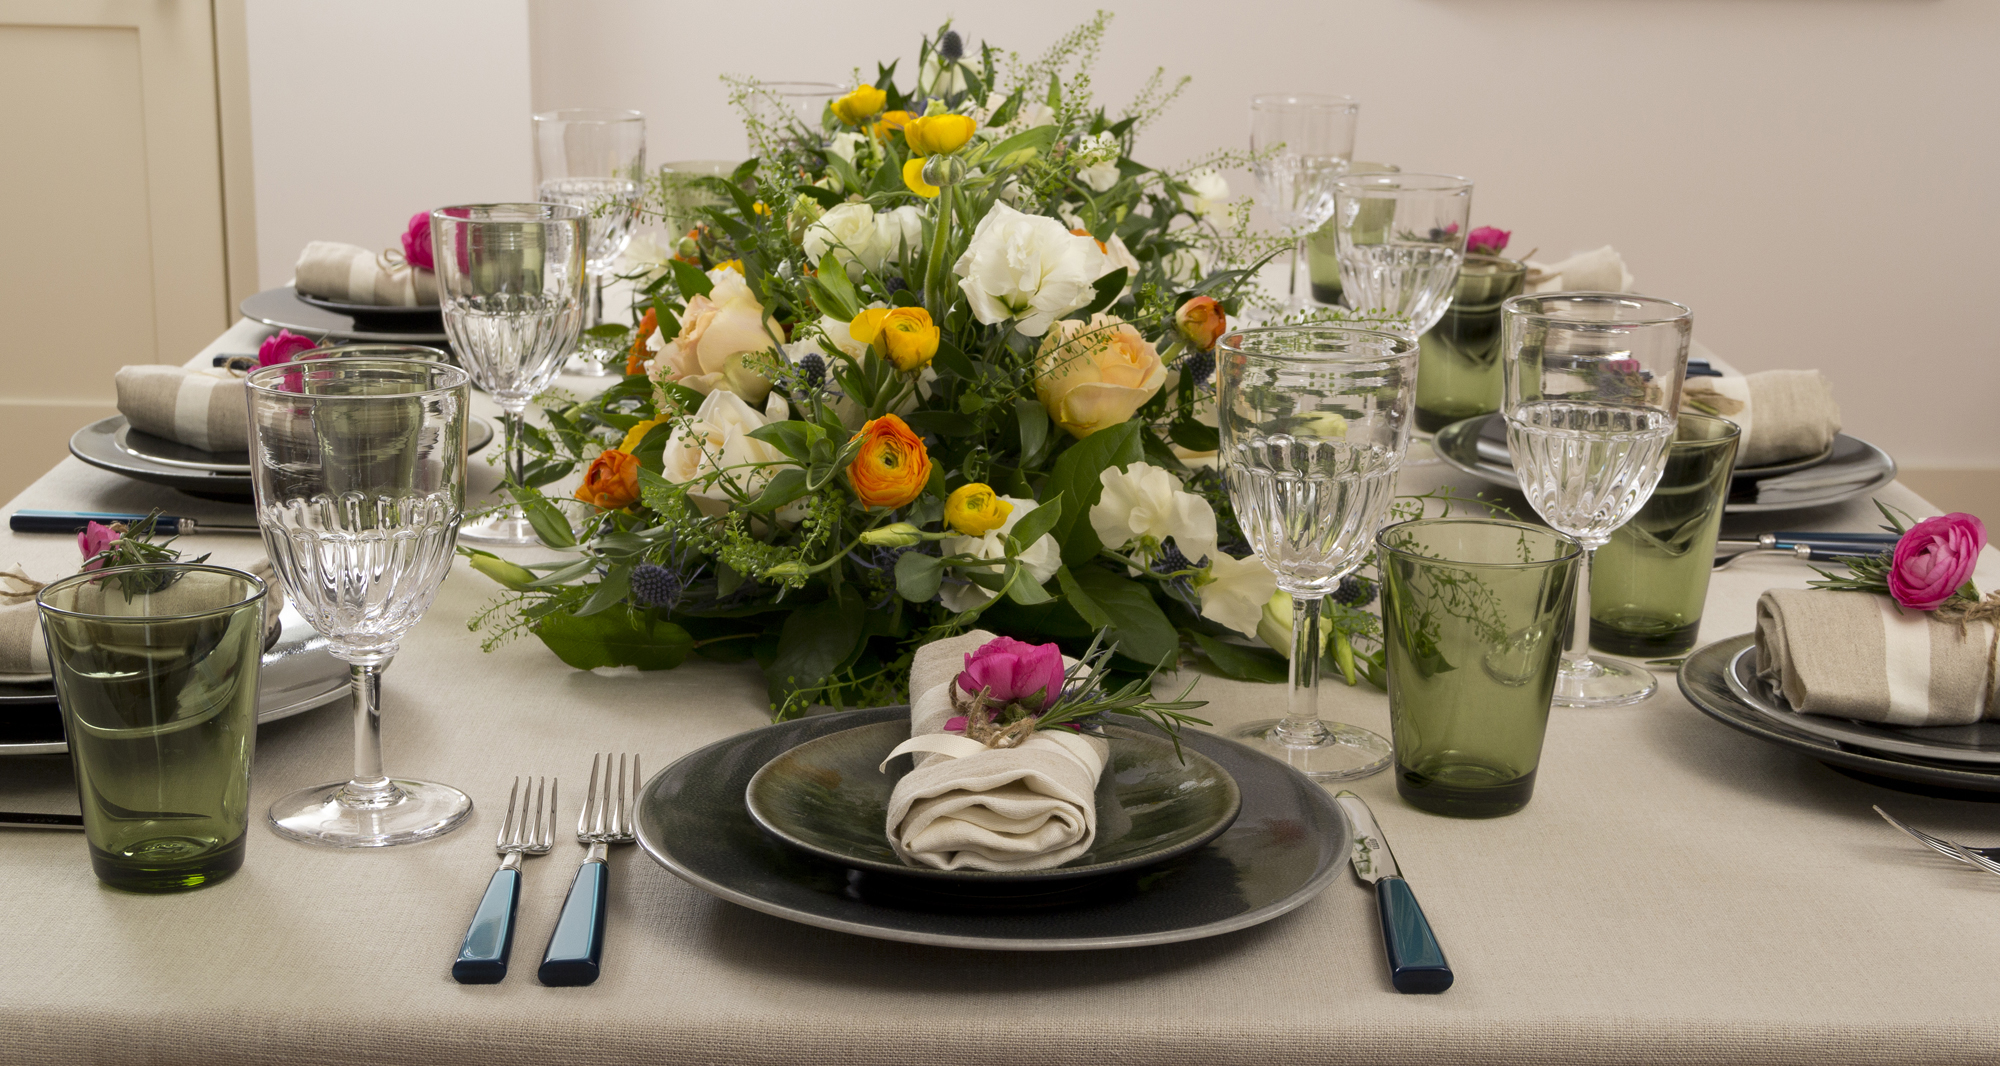 Gorgeous centerpiece from Laura Jean of Observatory Boutique and Floral Designs by Laura Jean